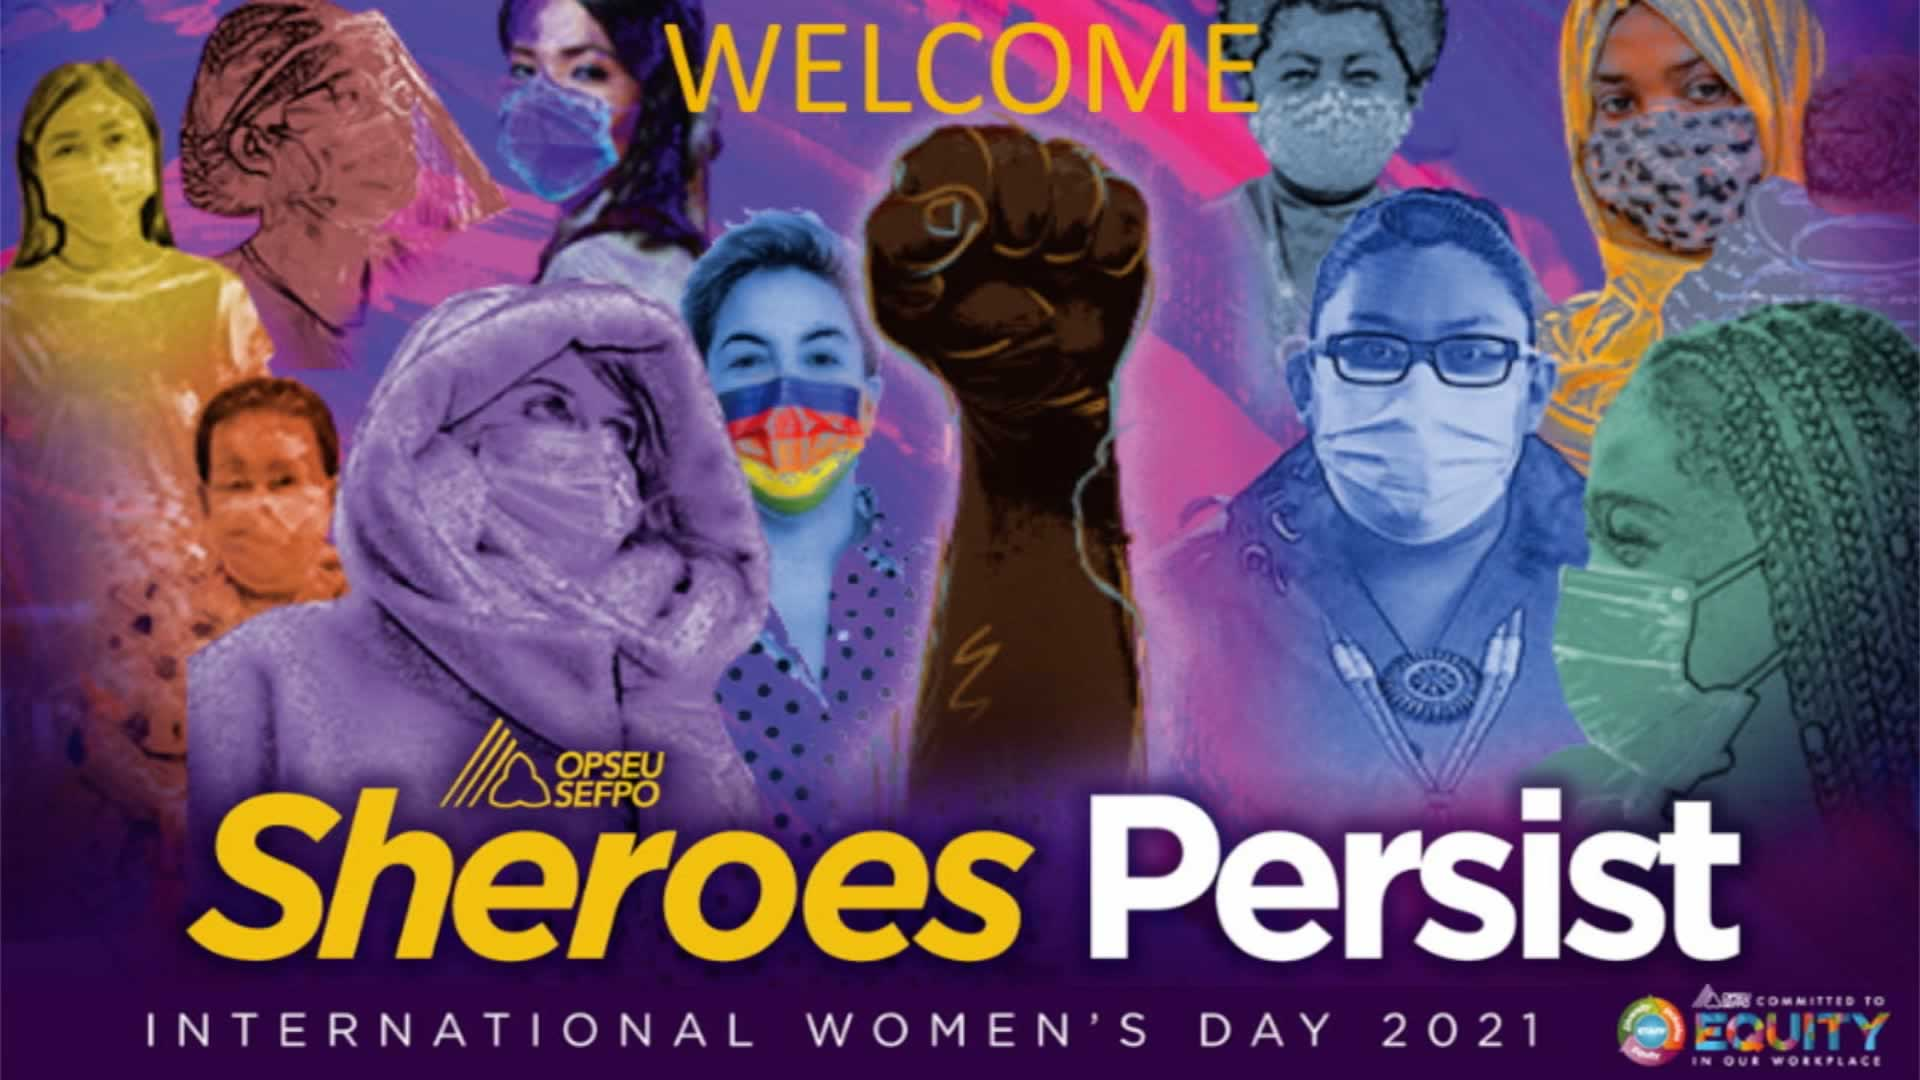 OPSEU/SEFPO celebrates International Women's Day 2021